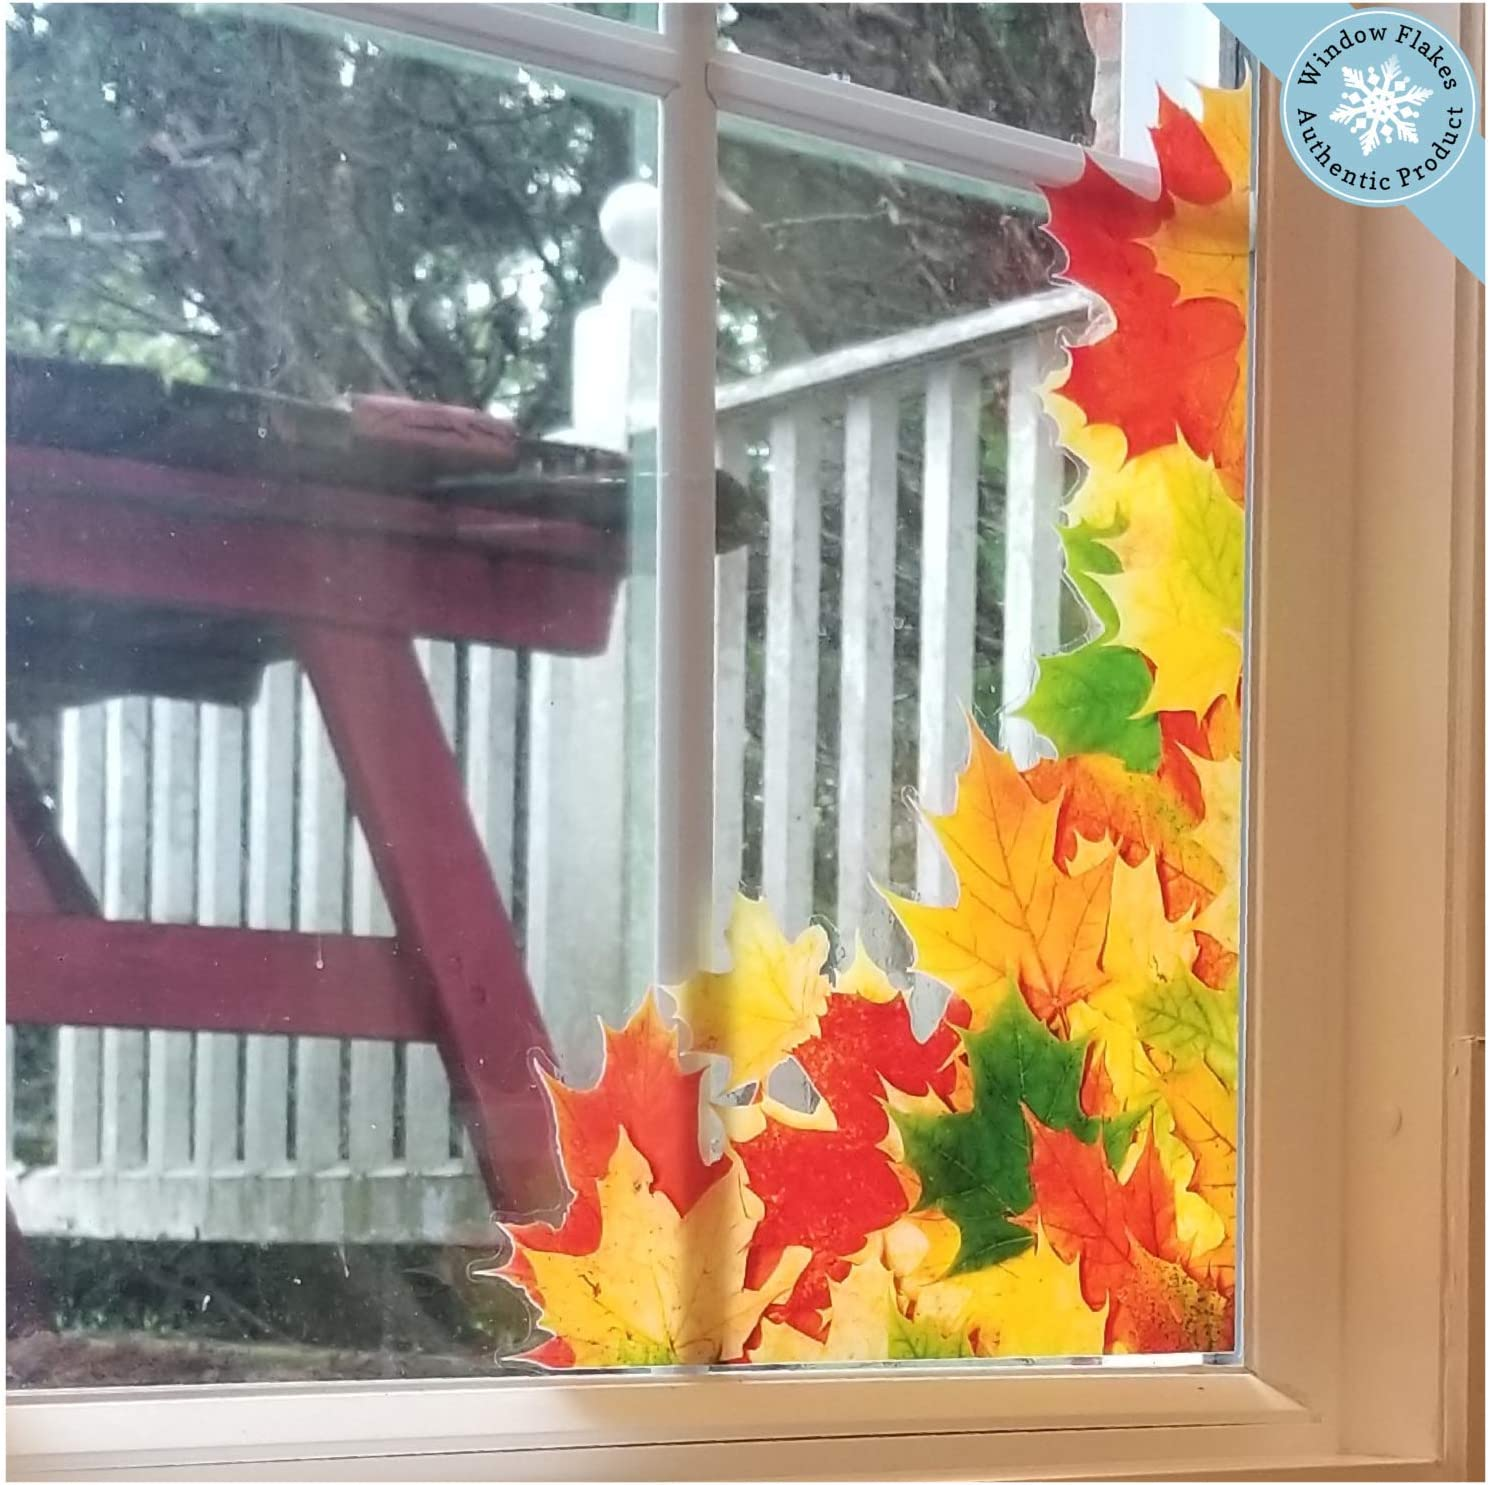 Fall Window Clings Leaves   12 Large Window Corner Fall Leaves Decoration    Double Sided Leaf Autumn Window Clings   Fall Decor   Reusable   Fall Door  ...